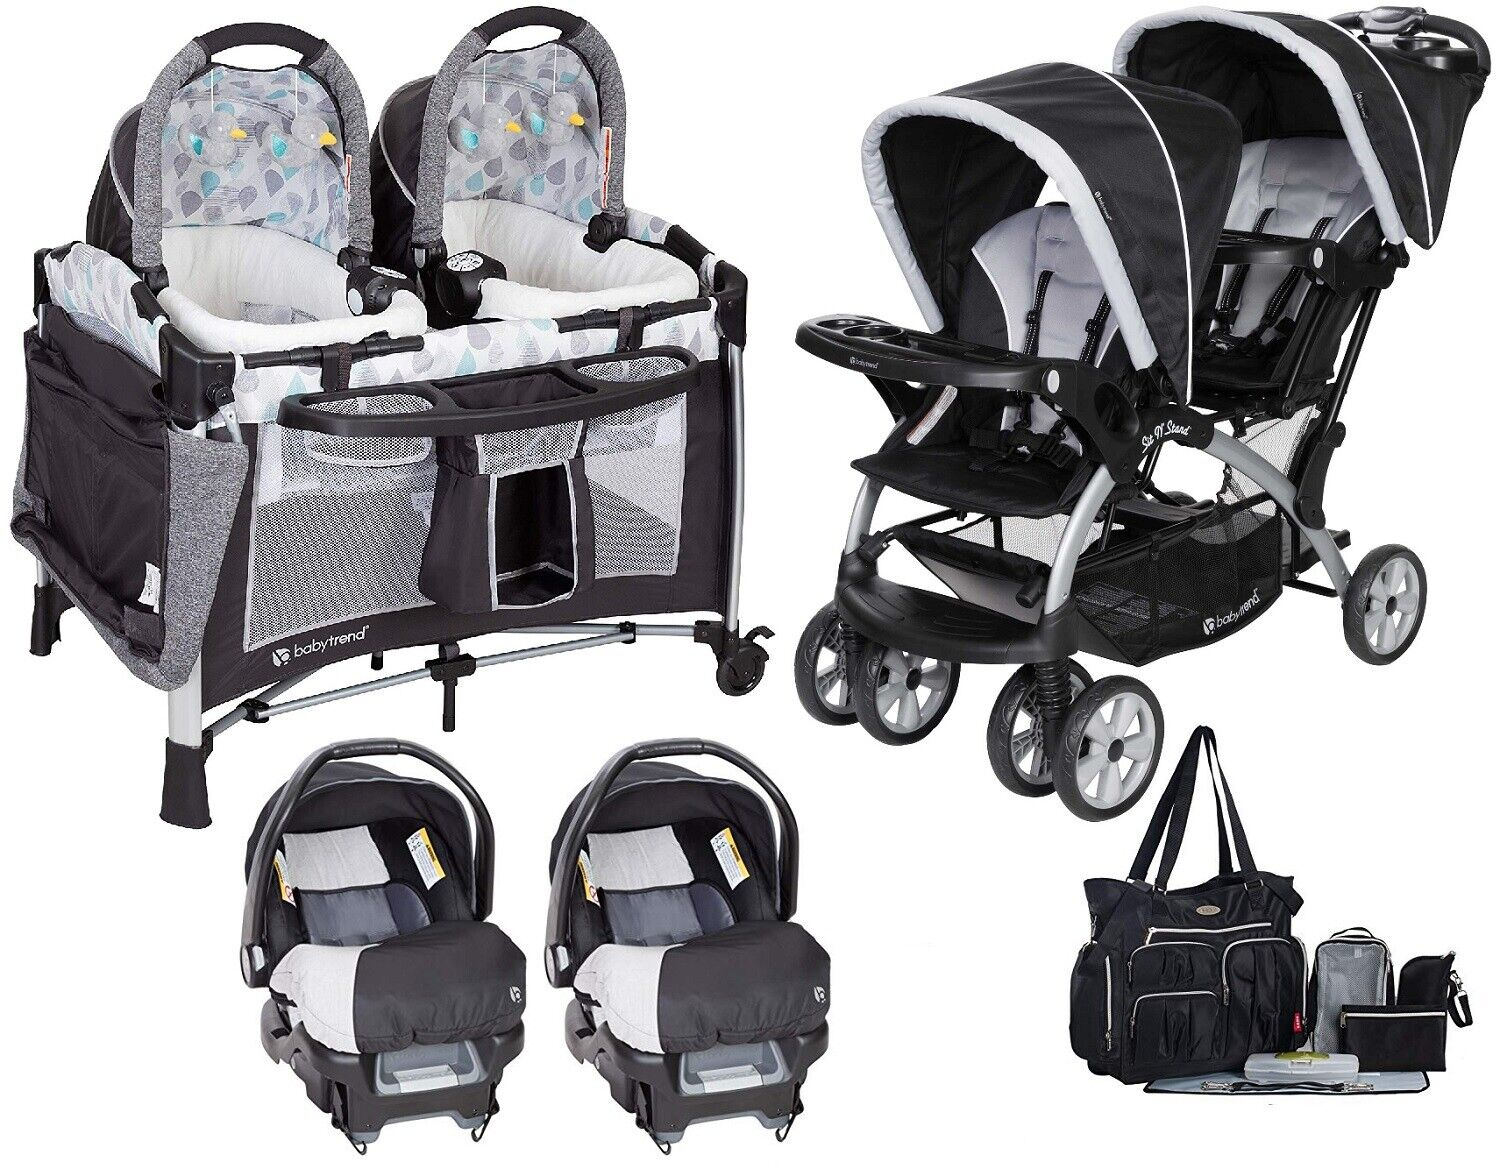 Baby Trend Double Stroller with 2 Matching Infant Car Seats